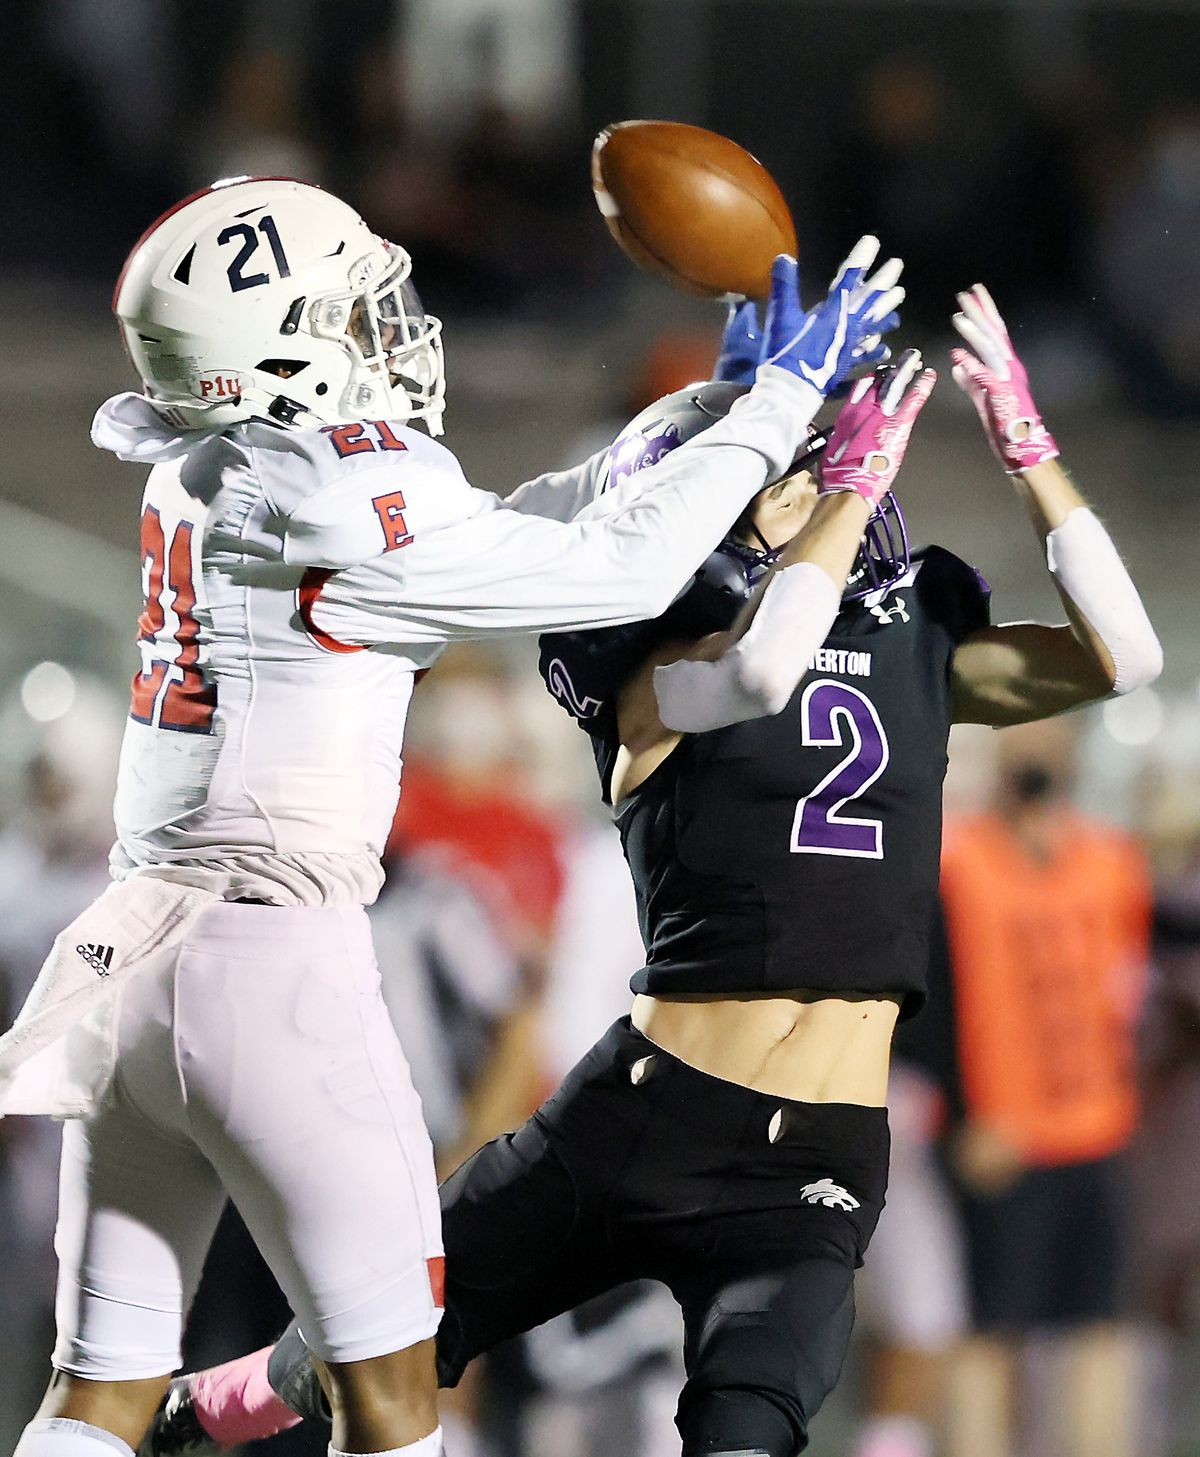 East's Tuione Tausinga and Riverton's Jaxon Bennett go up for the ball as East and Riverton play a high school football game in Riverton on Friday, Oct. 9, 2020. East won 36-20.